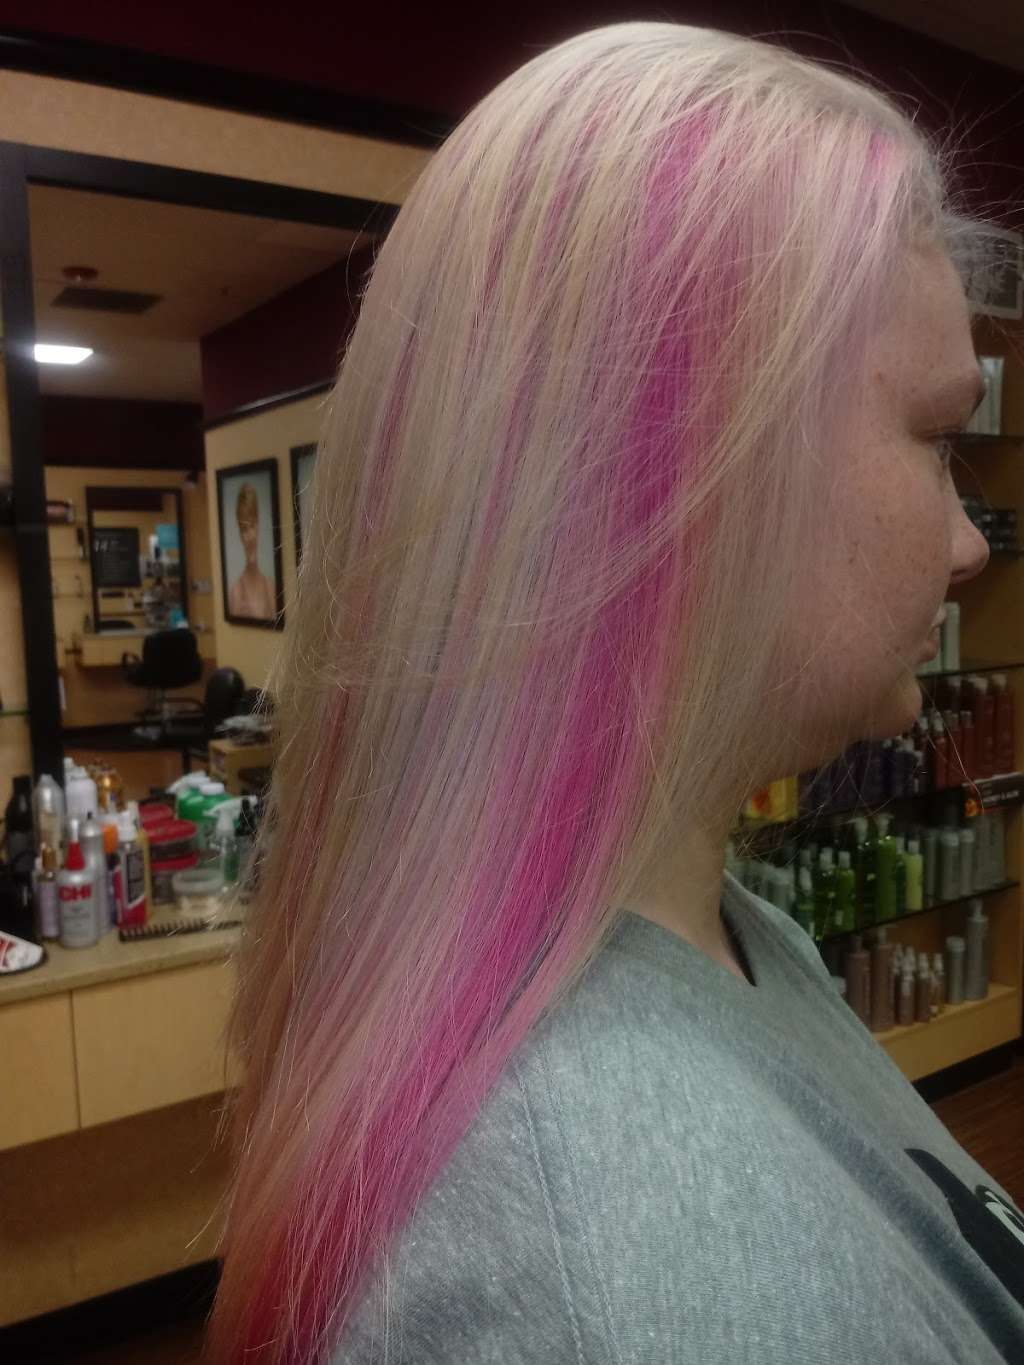 SmartStyle Hair Salon - hair care  | Photo 5 of 10 | Address: 27650 Tomball Pkwy #703, Tomball, TX 77375, USA | Phone: (281) 516-9201